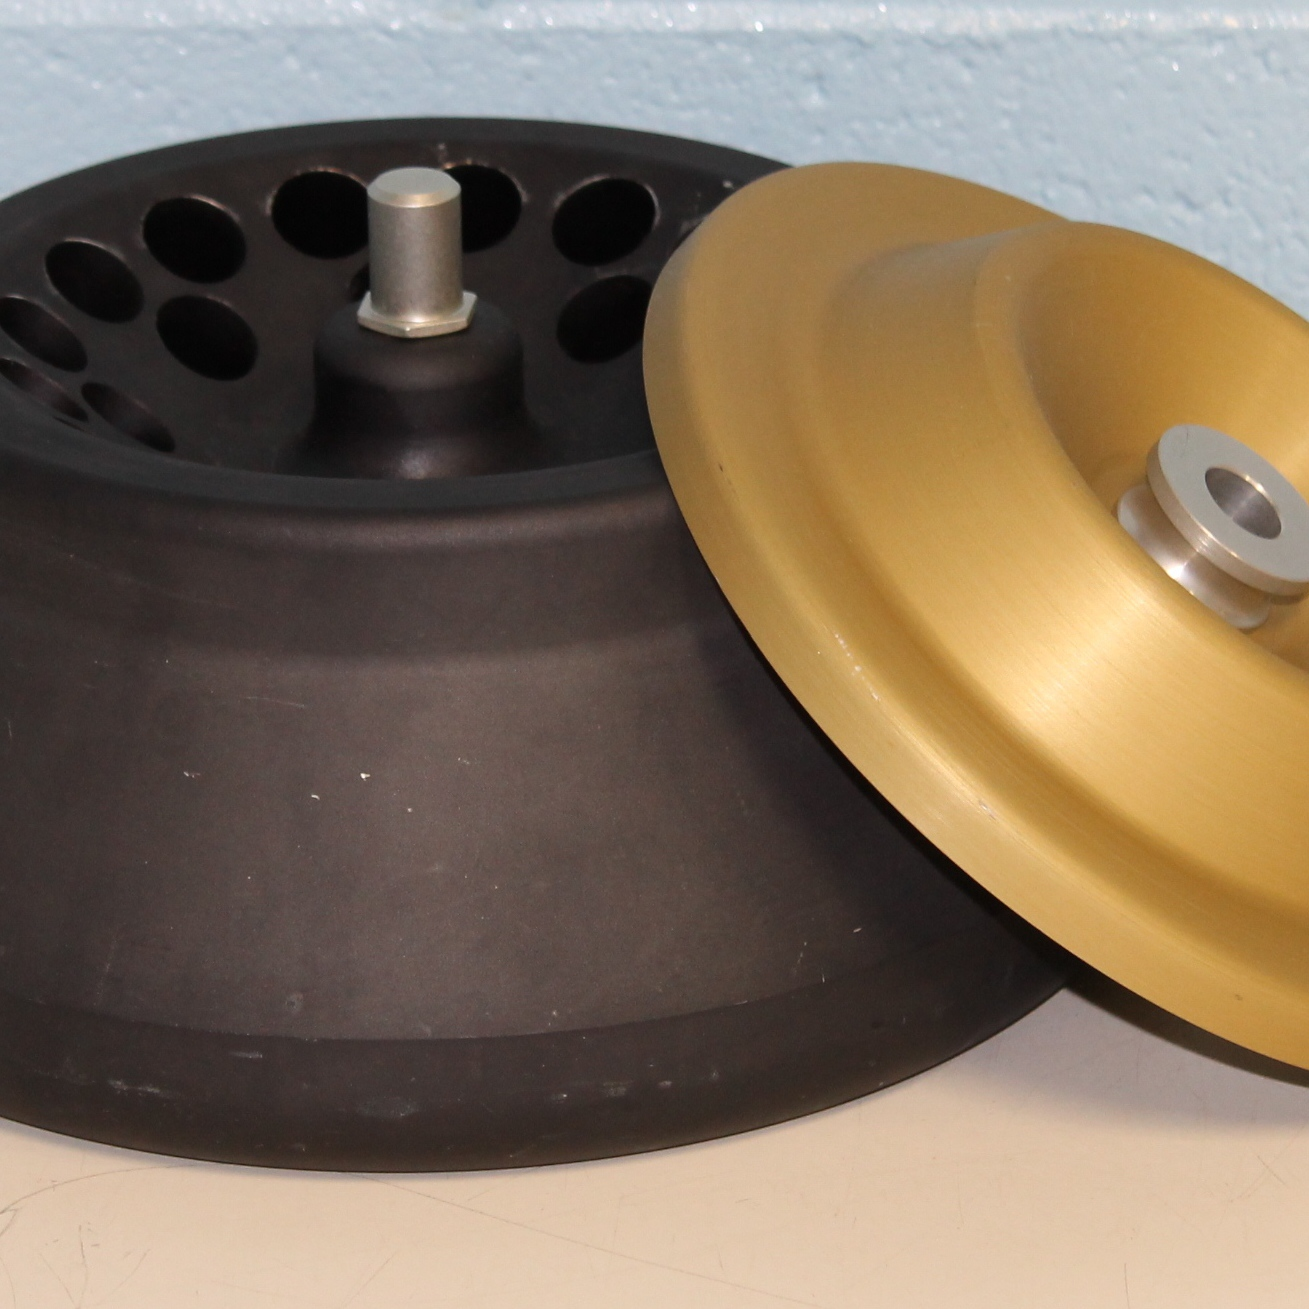 Beckman Coulter TA-24 Rotor Image